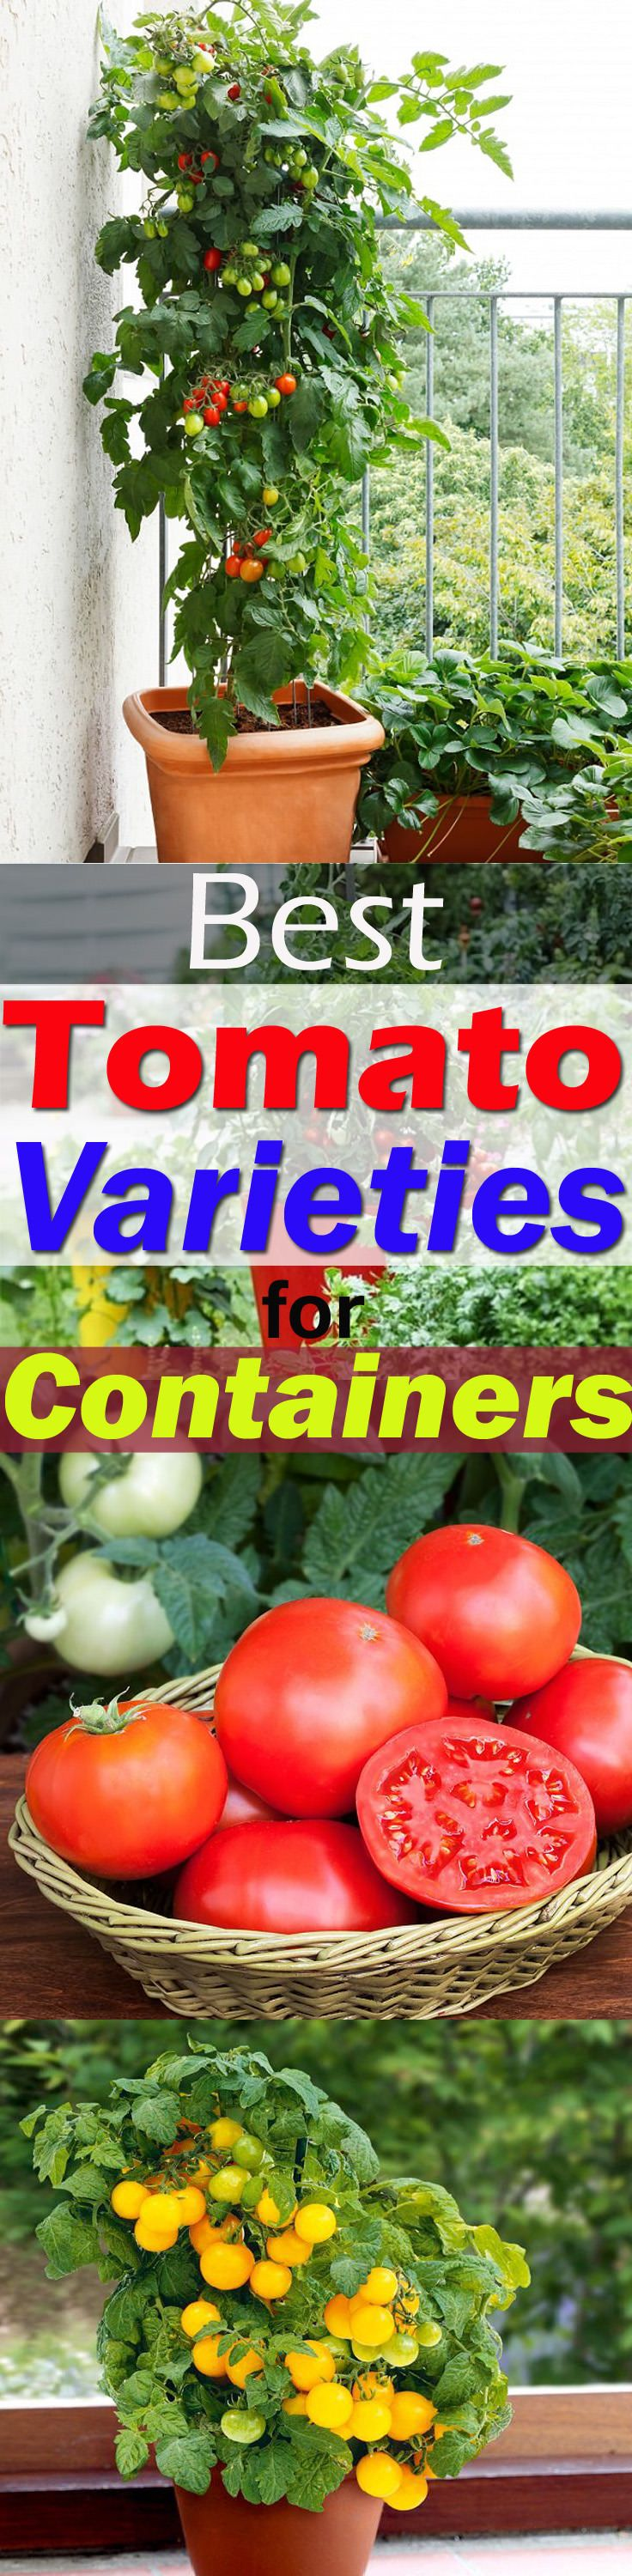 How much to water tomatoes in containers - Best Tomato Varieties For Containers